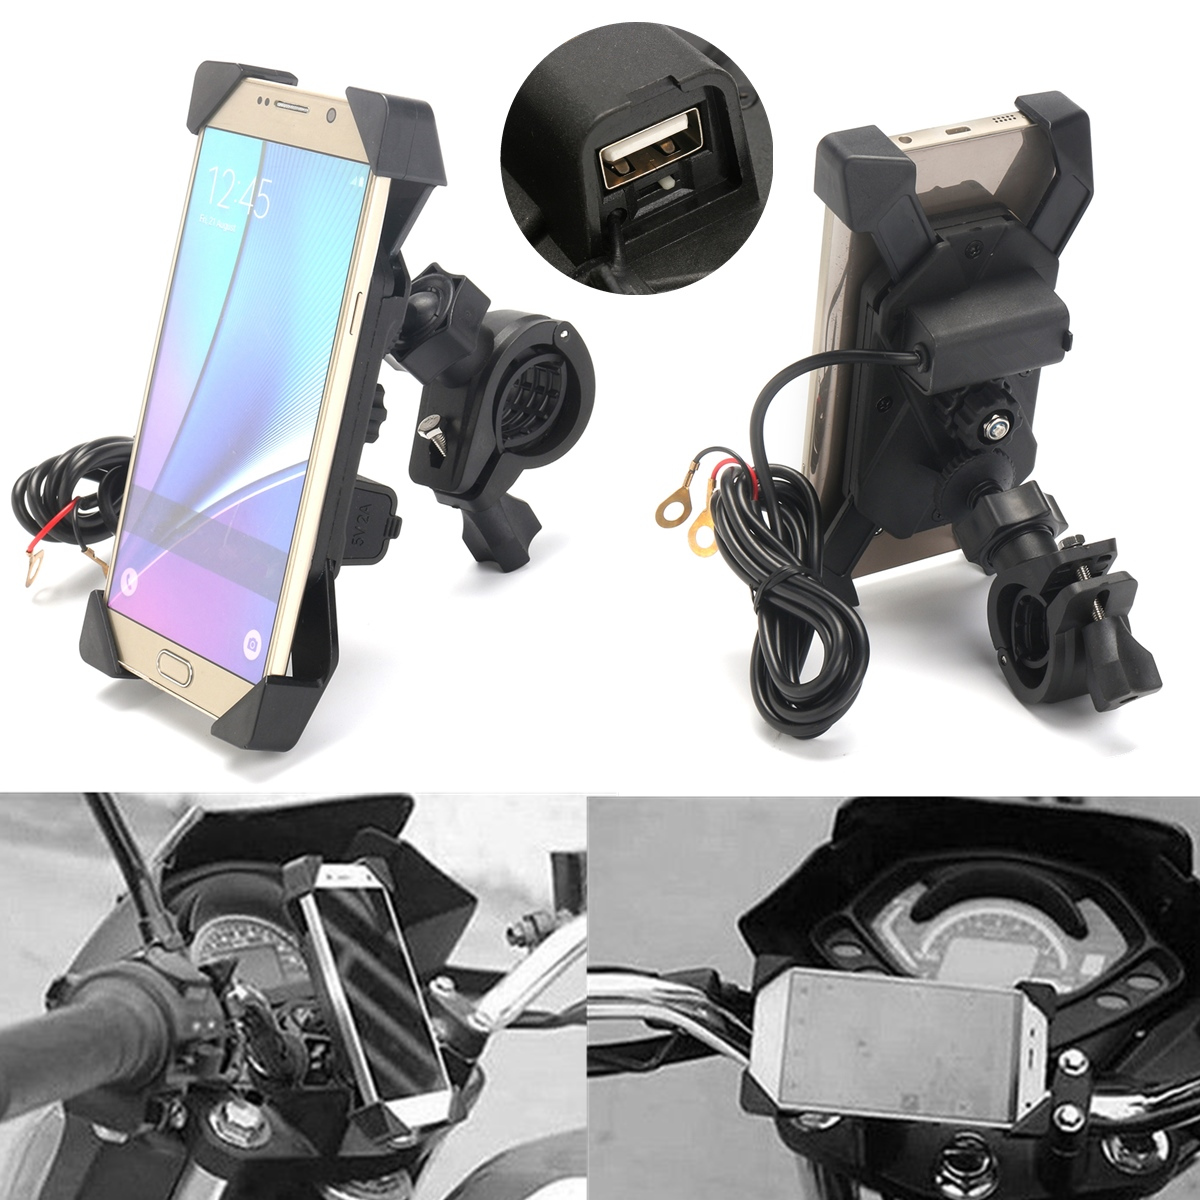 USB Handlebar Phone Charger Holder for iPhone Samsung Scooter Motorcycle Bike